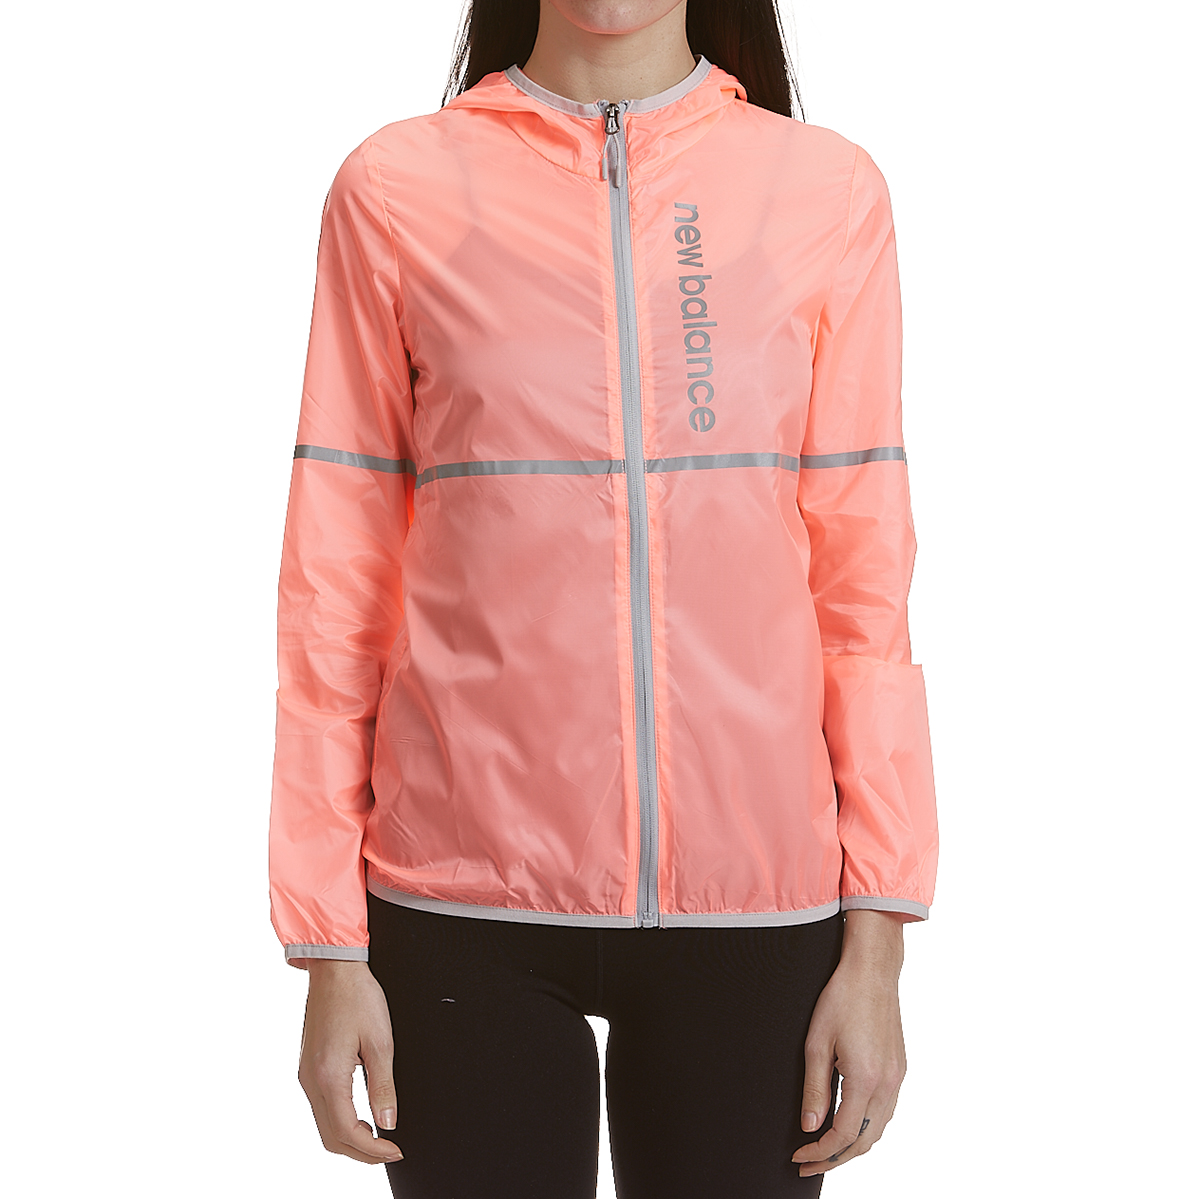 New Balance Women's Translucent Ribstop Hooded Jacket With Reflective Trim - Red, M